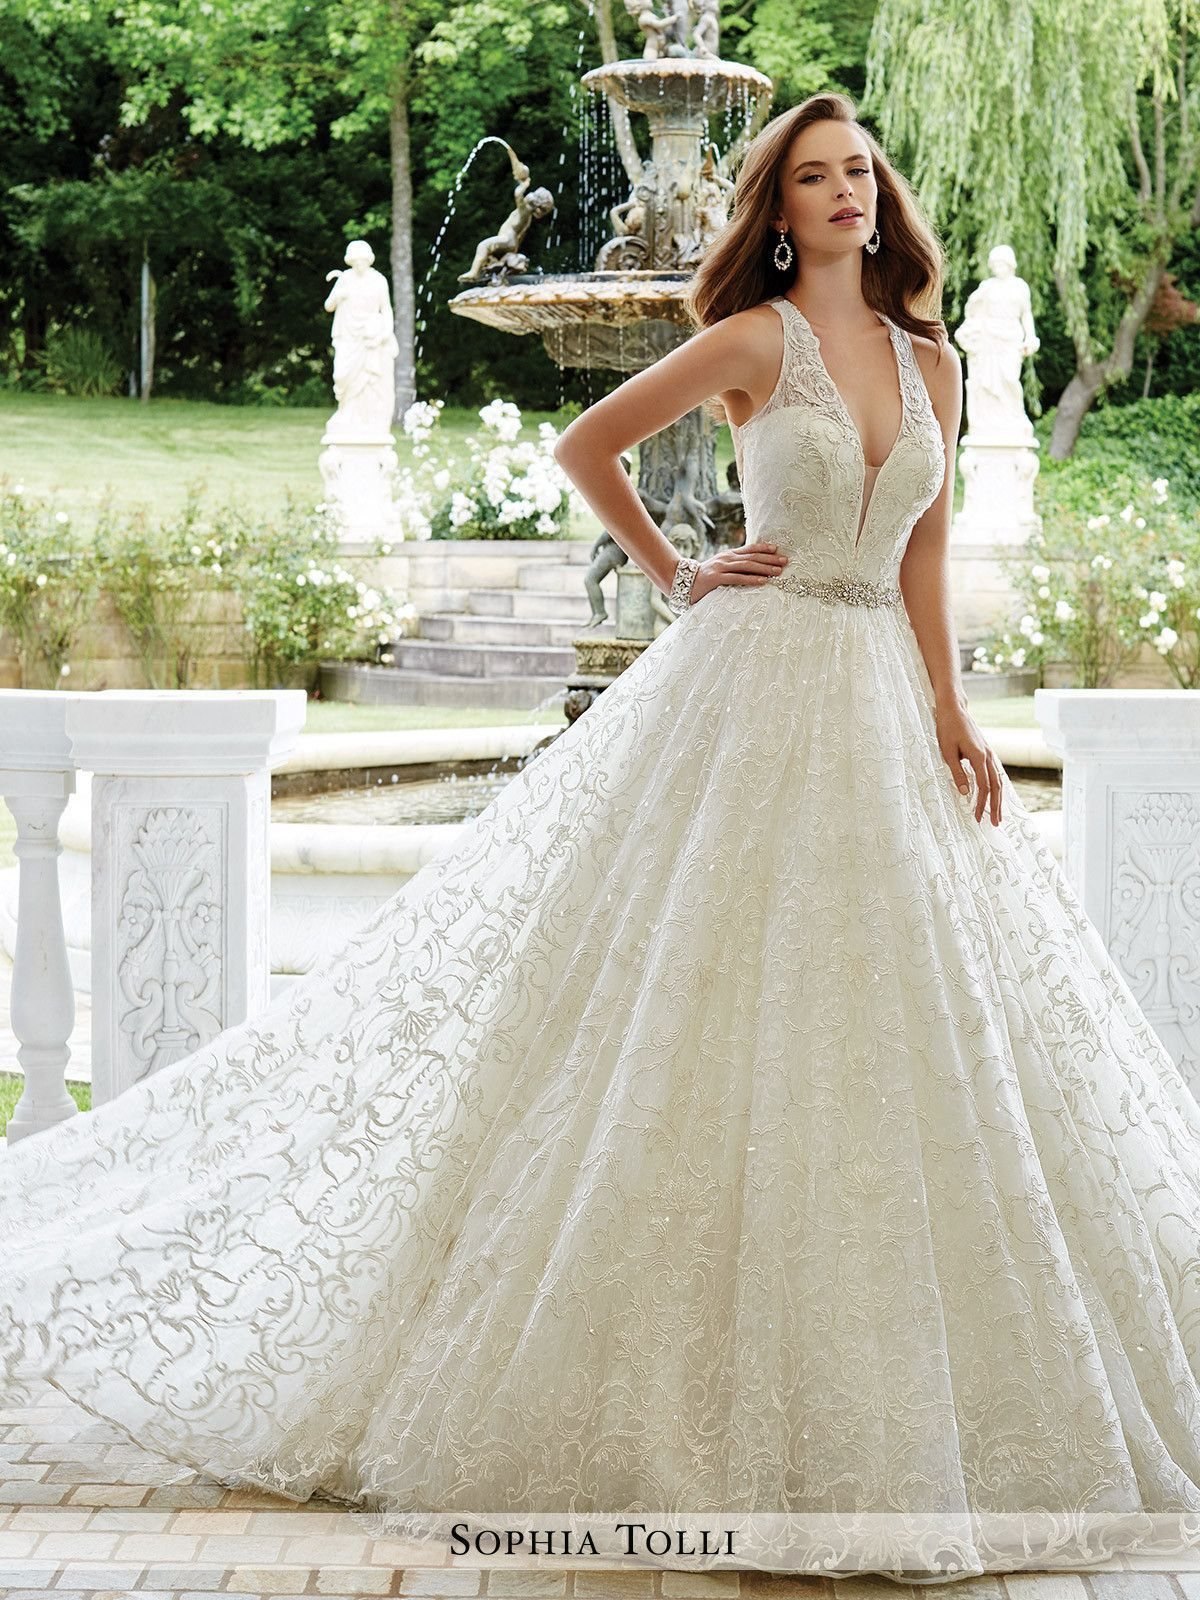 Blog   Tuxedo rental, Bridal gowns and Bridal boutique